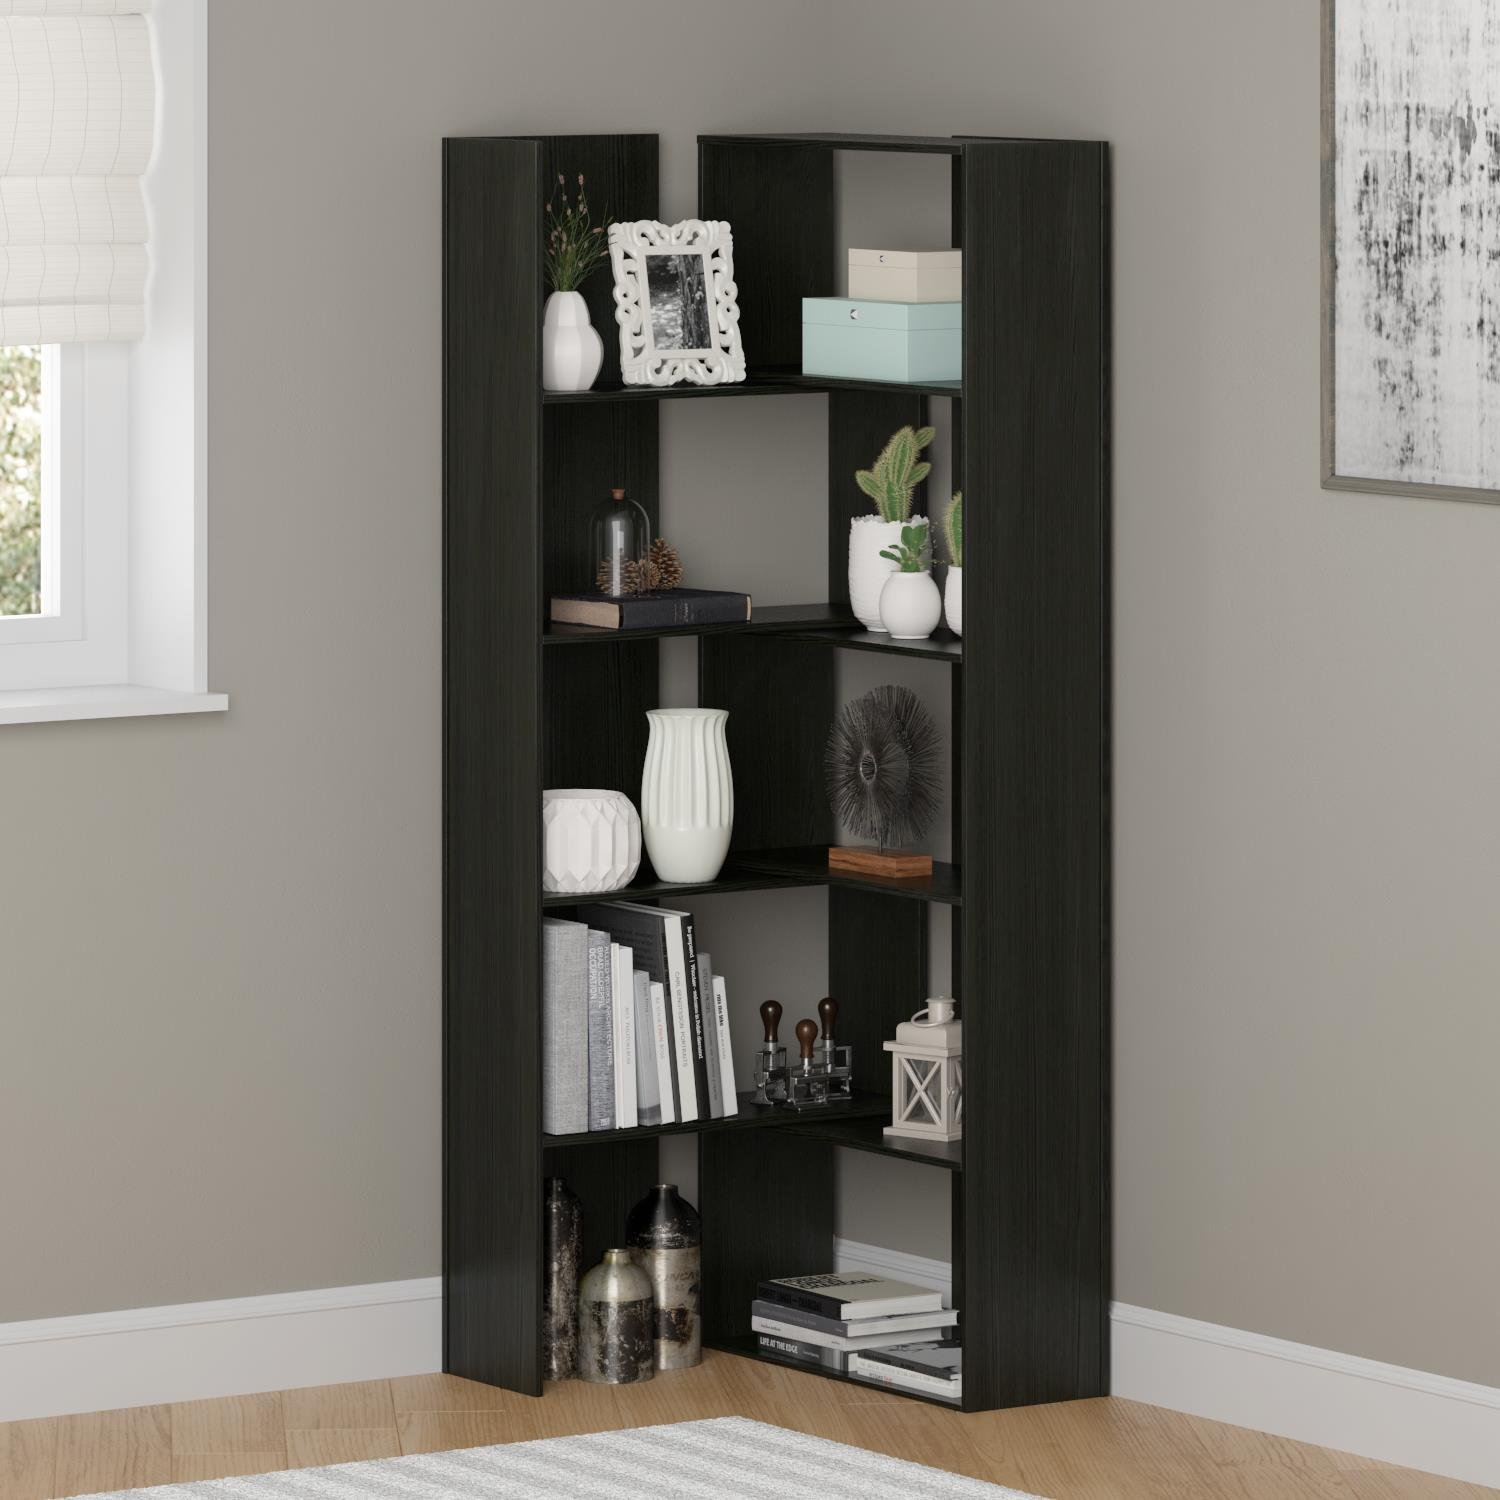 size picture floor barrister flower of varnished silver wooden metal elegance bookcases narrow full bookcase vase wall frame conventional door dark glass gray brown gold solid enclosed